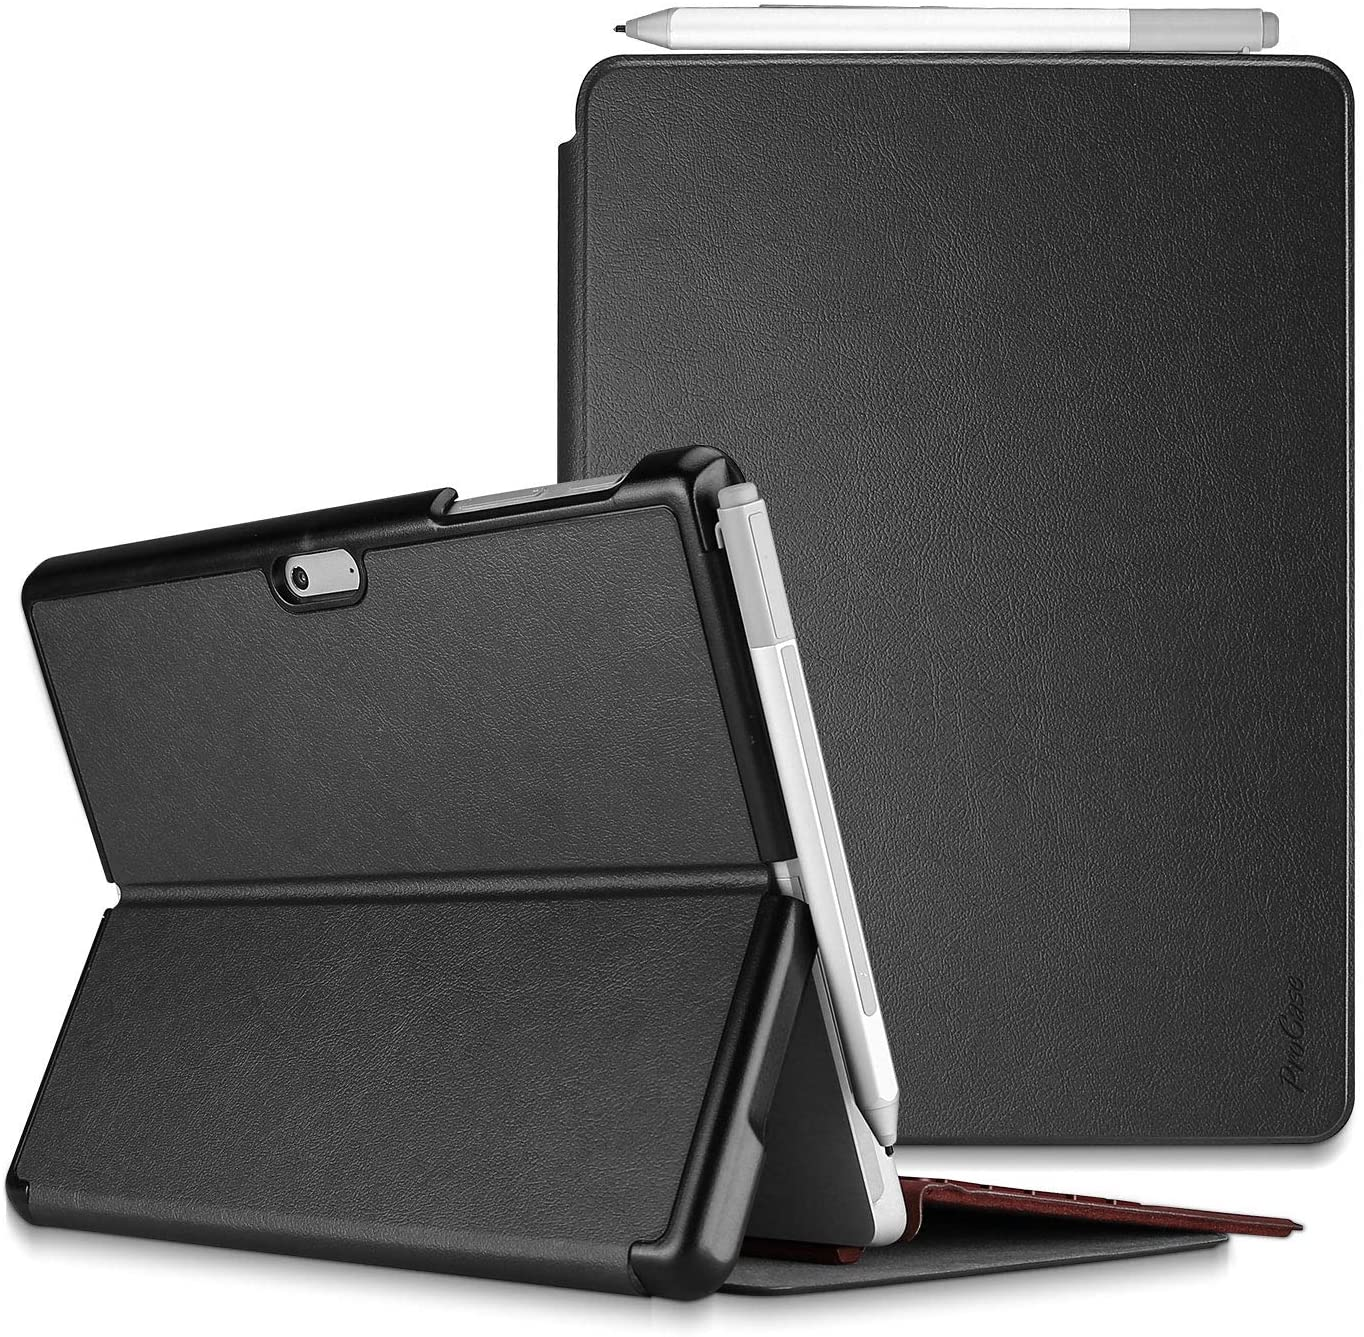 Procase Protective Case for Surface Go 2 2020 / Surface Go 2018, Slim Light Smart Cover Stand Hard Shell with Built-in Surface Pen Holder, Compatible with Surface Type Cover -Black